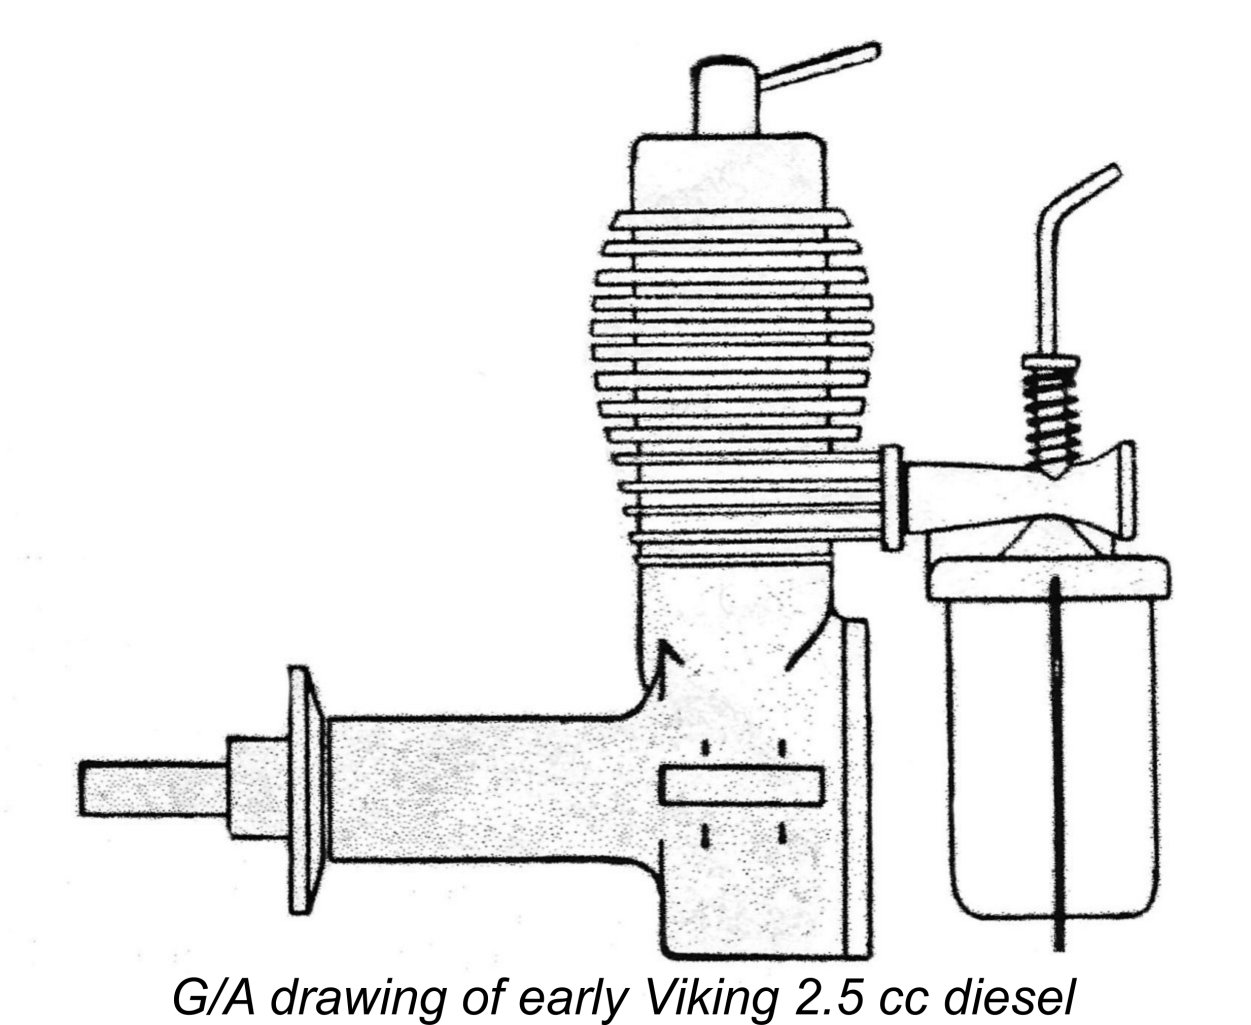 All versions of the engine used an externally threaded steel needle prior to the summer of 1953 the engines featured a neat but fragile screw in cast